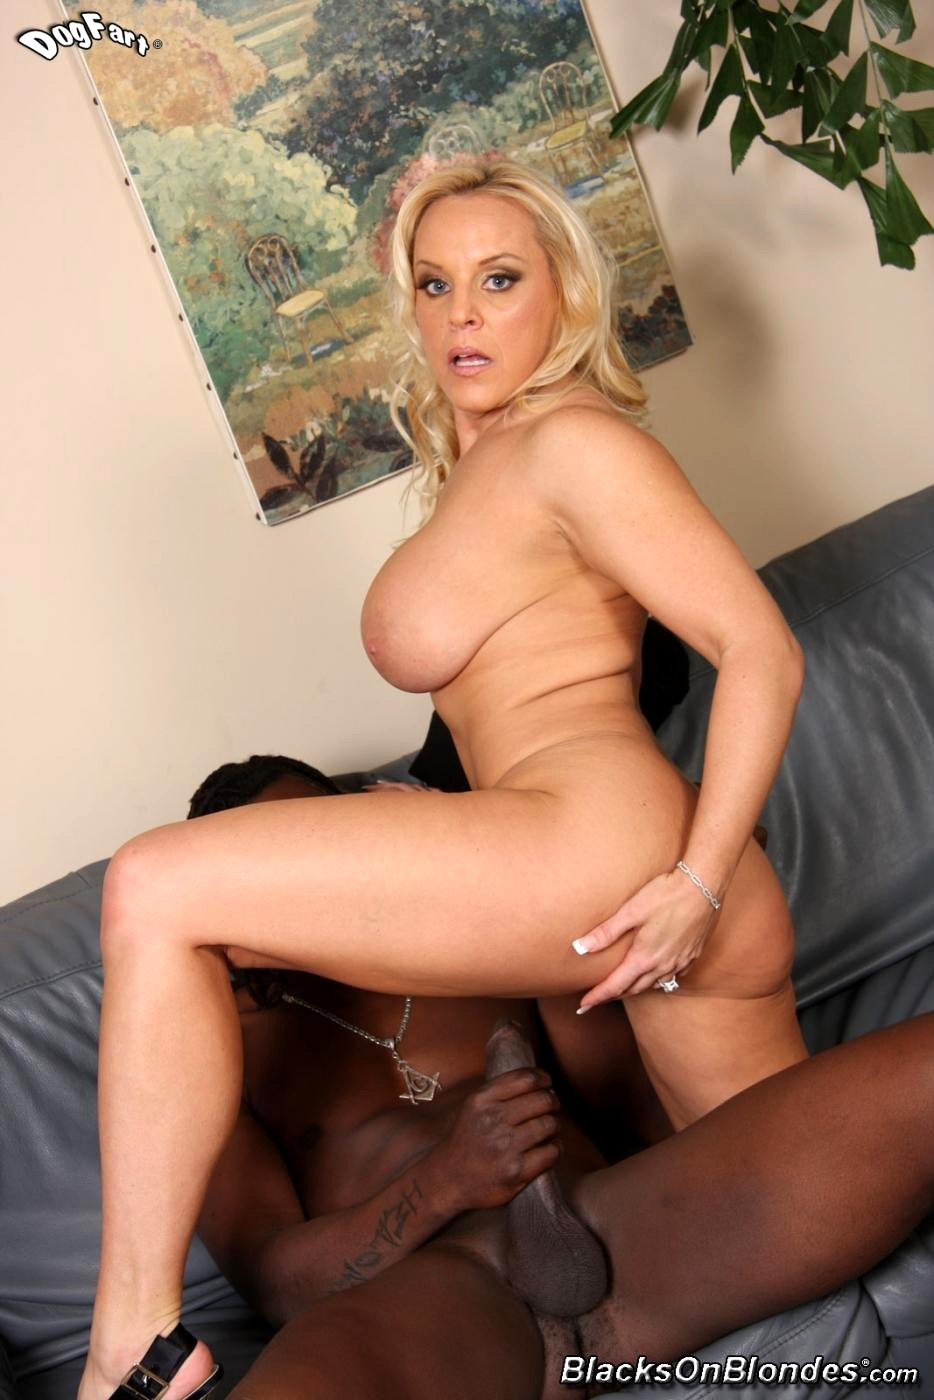 Babe Today Blacks On Blondes Alexis Golden Weekly Group Sex Thread Porn Pics-7916